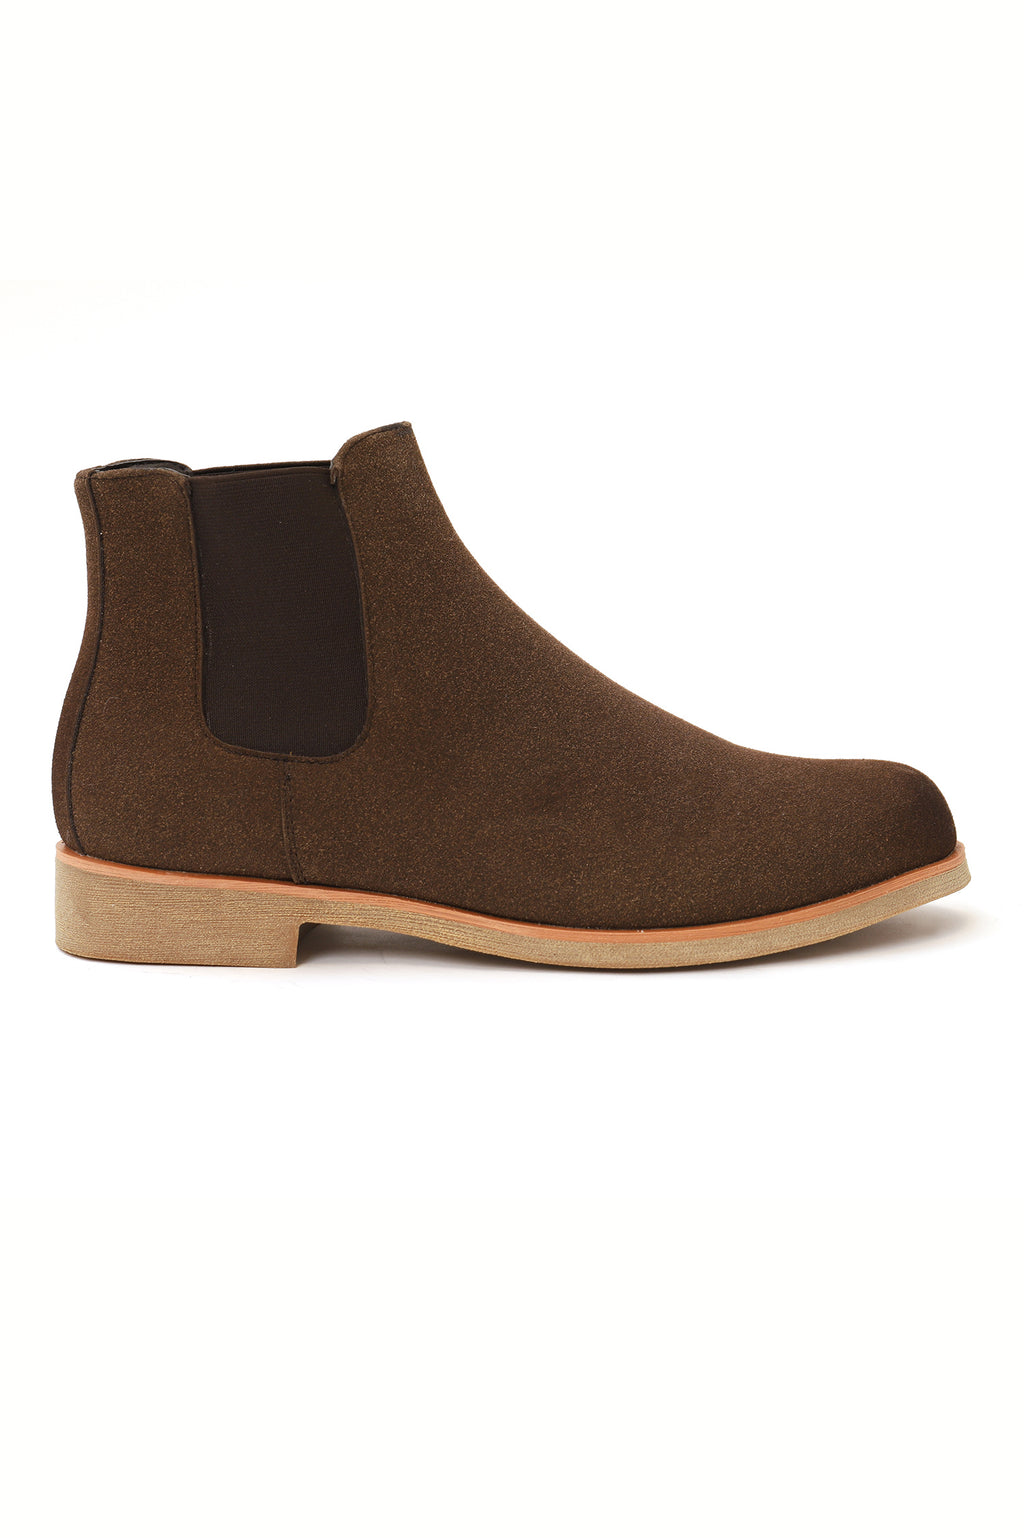 CHELSEA BOOTS -COFFEE